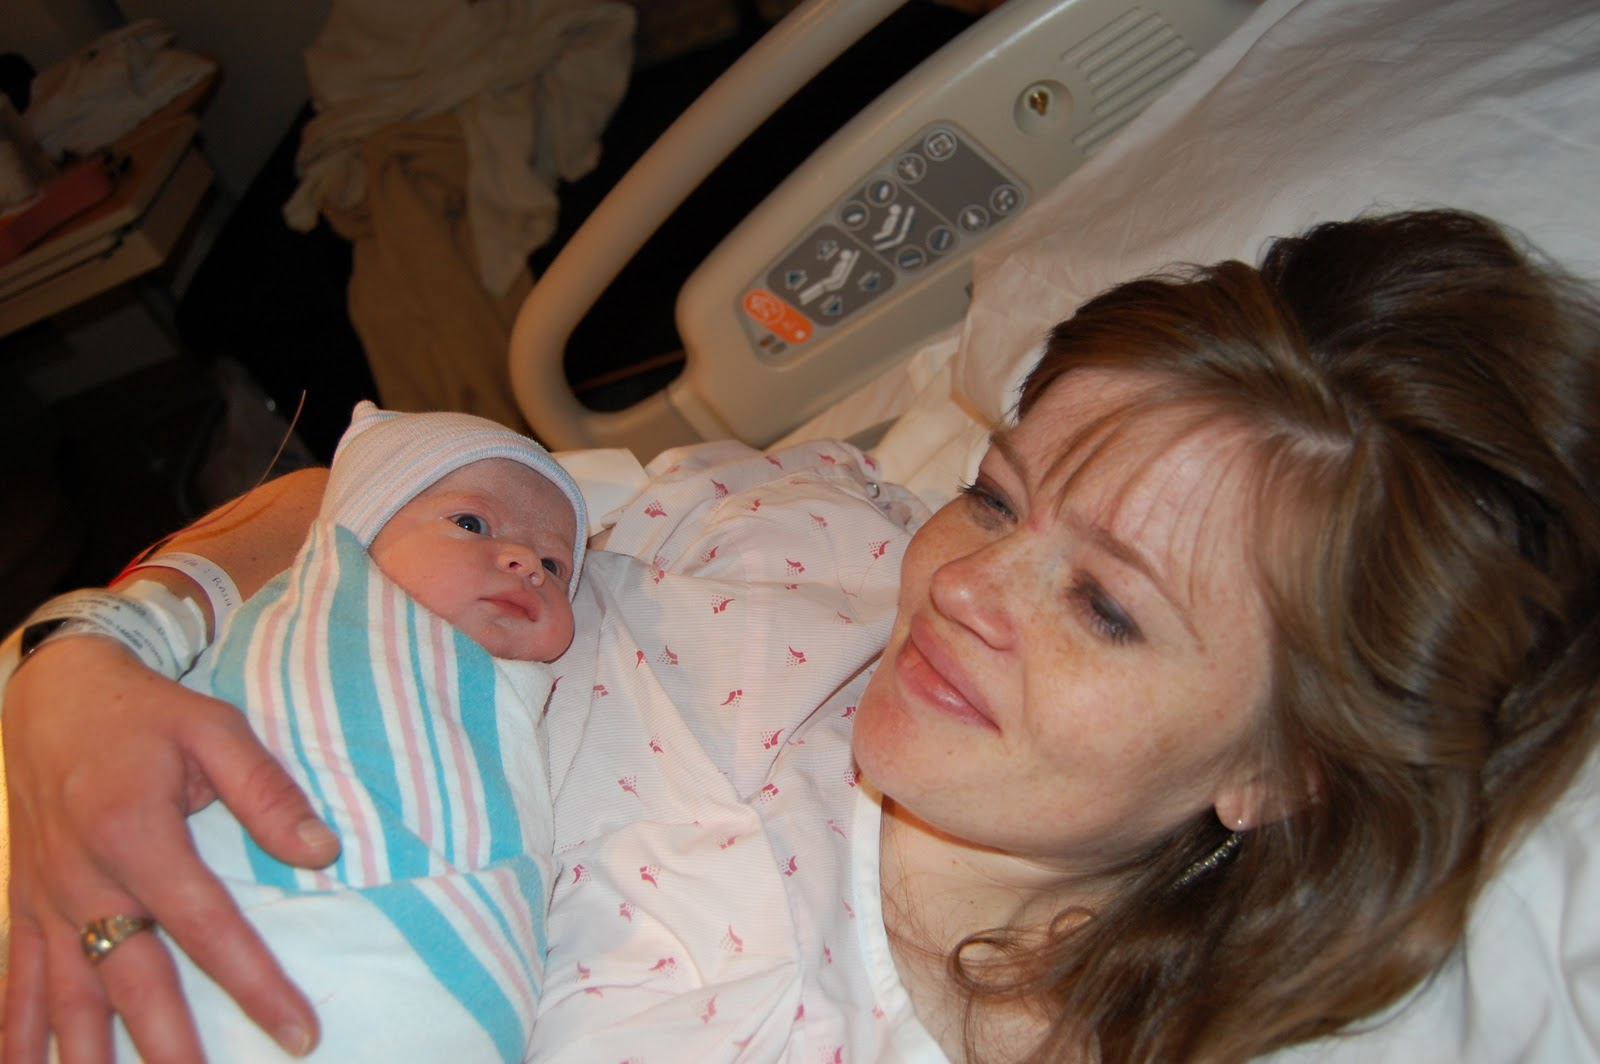 natural birth Learn about natural childbirth and natural birth plan what are your birthing options  who will assist at the birth.